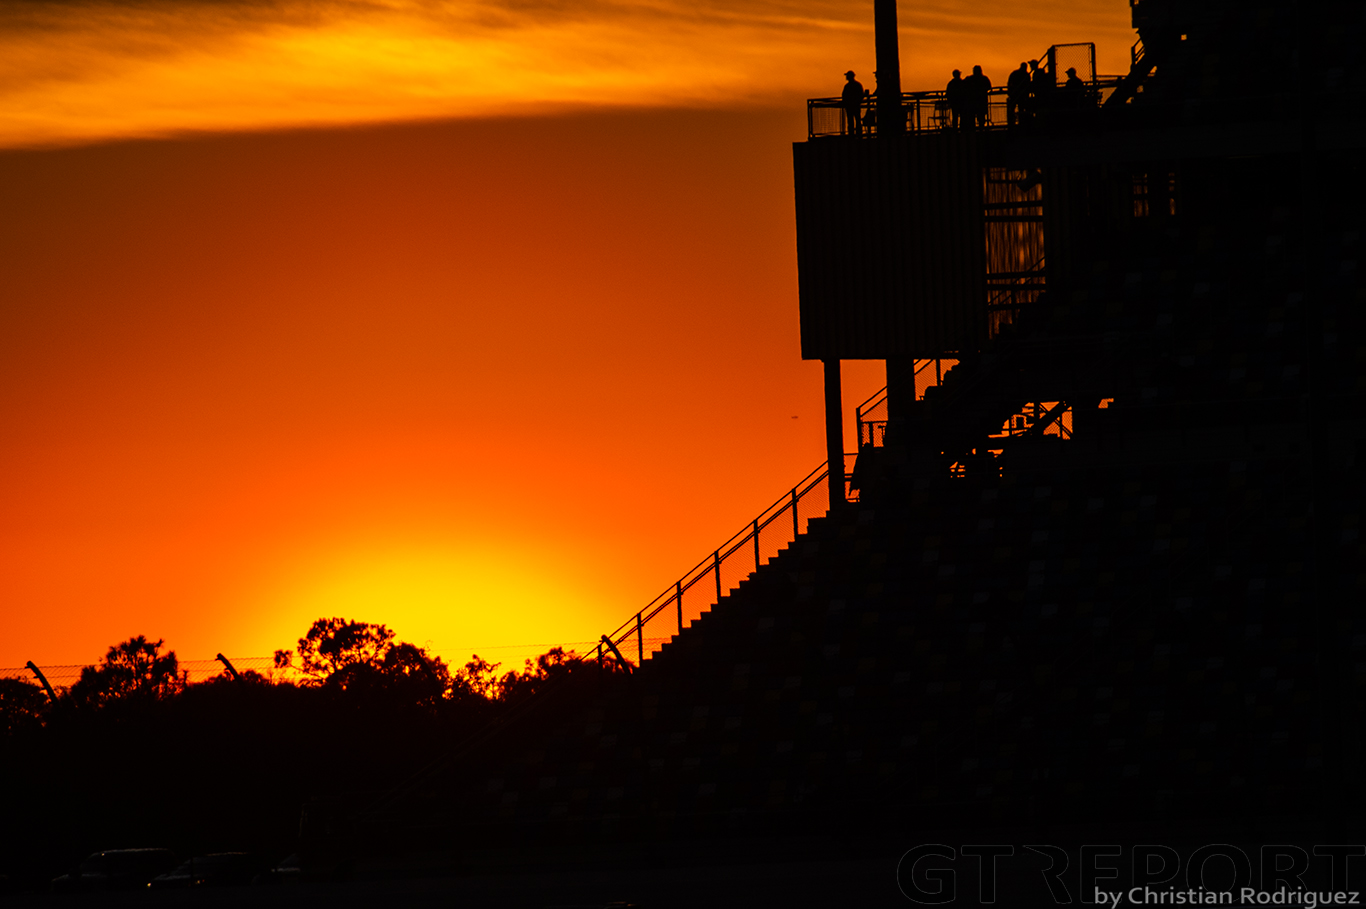 Sunset at the 2020 Rolex 24 hours of Daytona